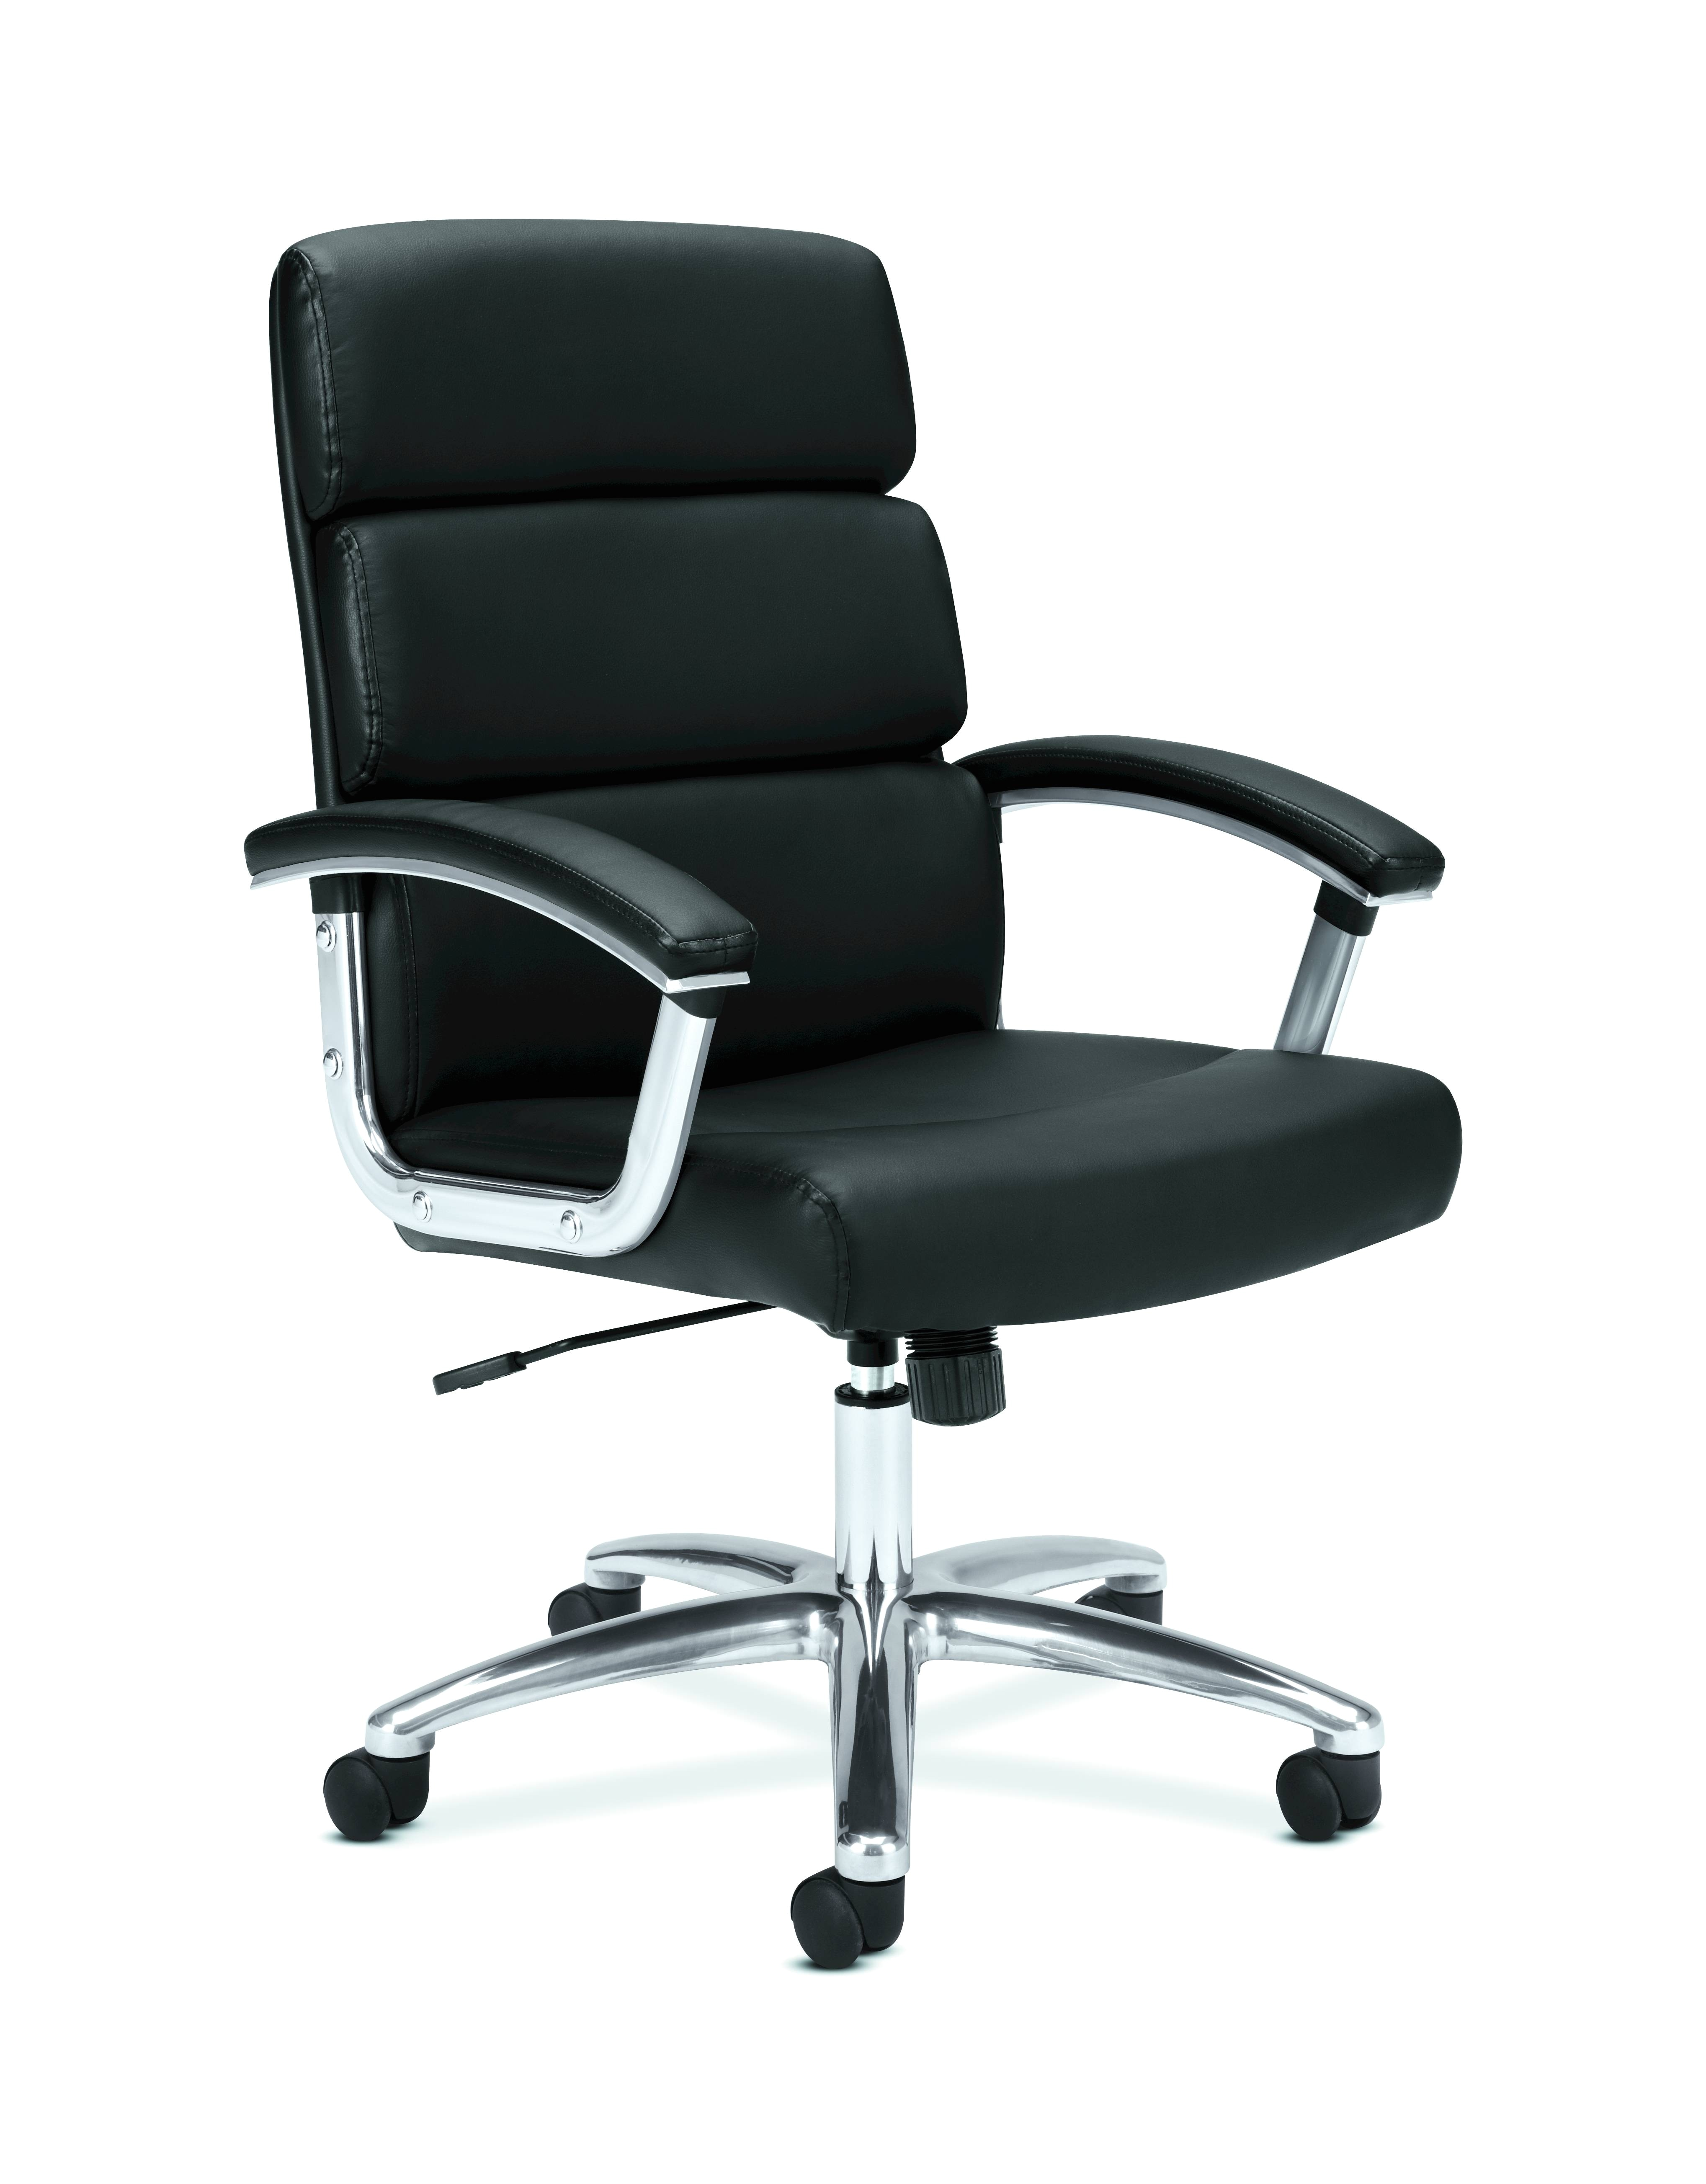 Workpro Commercial Mesh Back Executive Chair Black 50 Fabulous Workpro Commercial Mesh Back Executive Chair Black